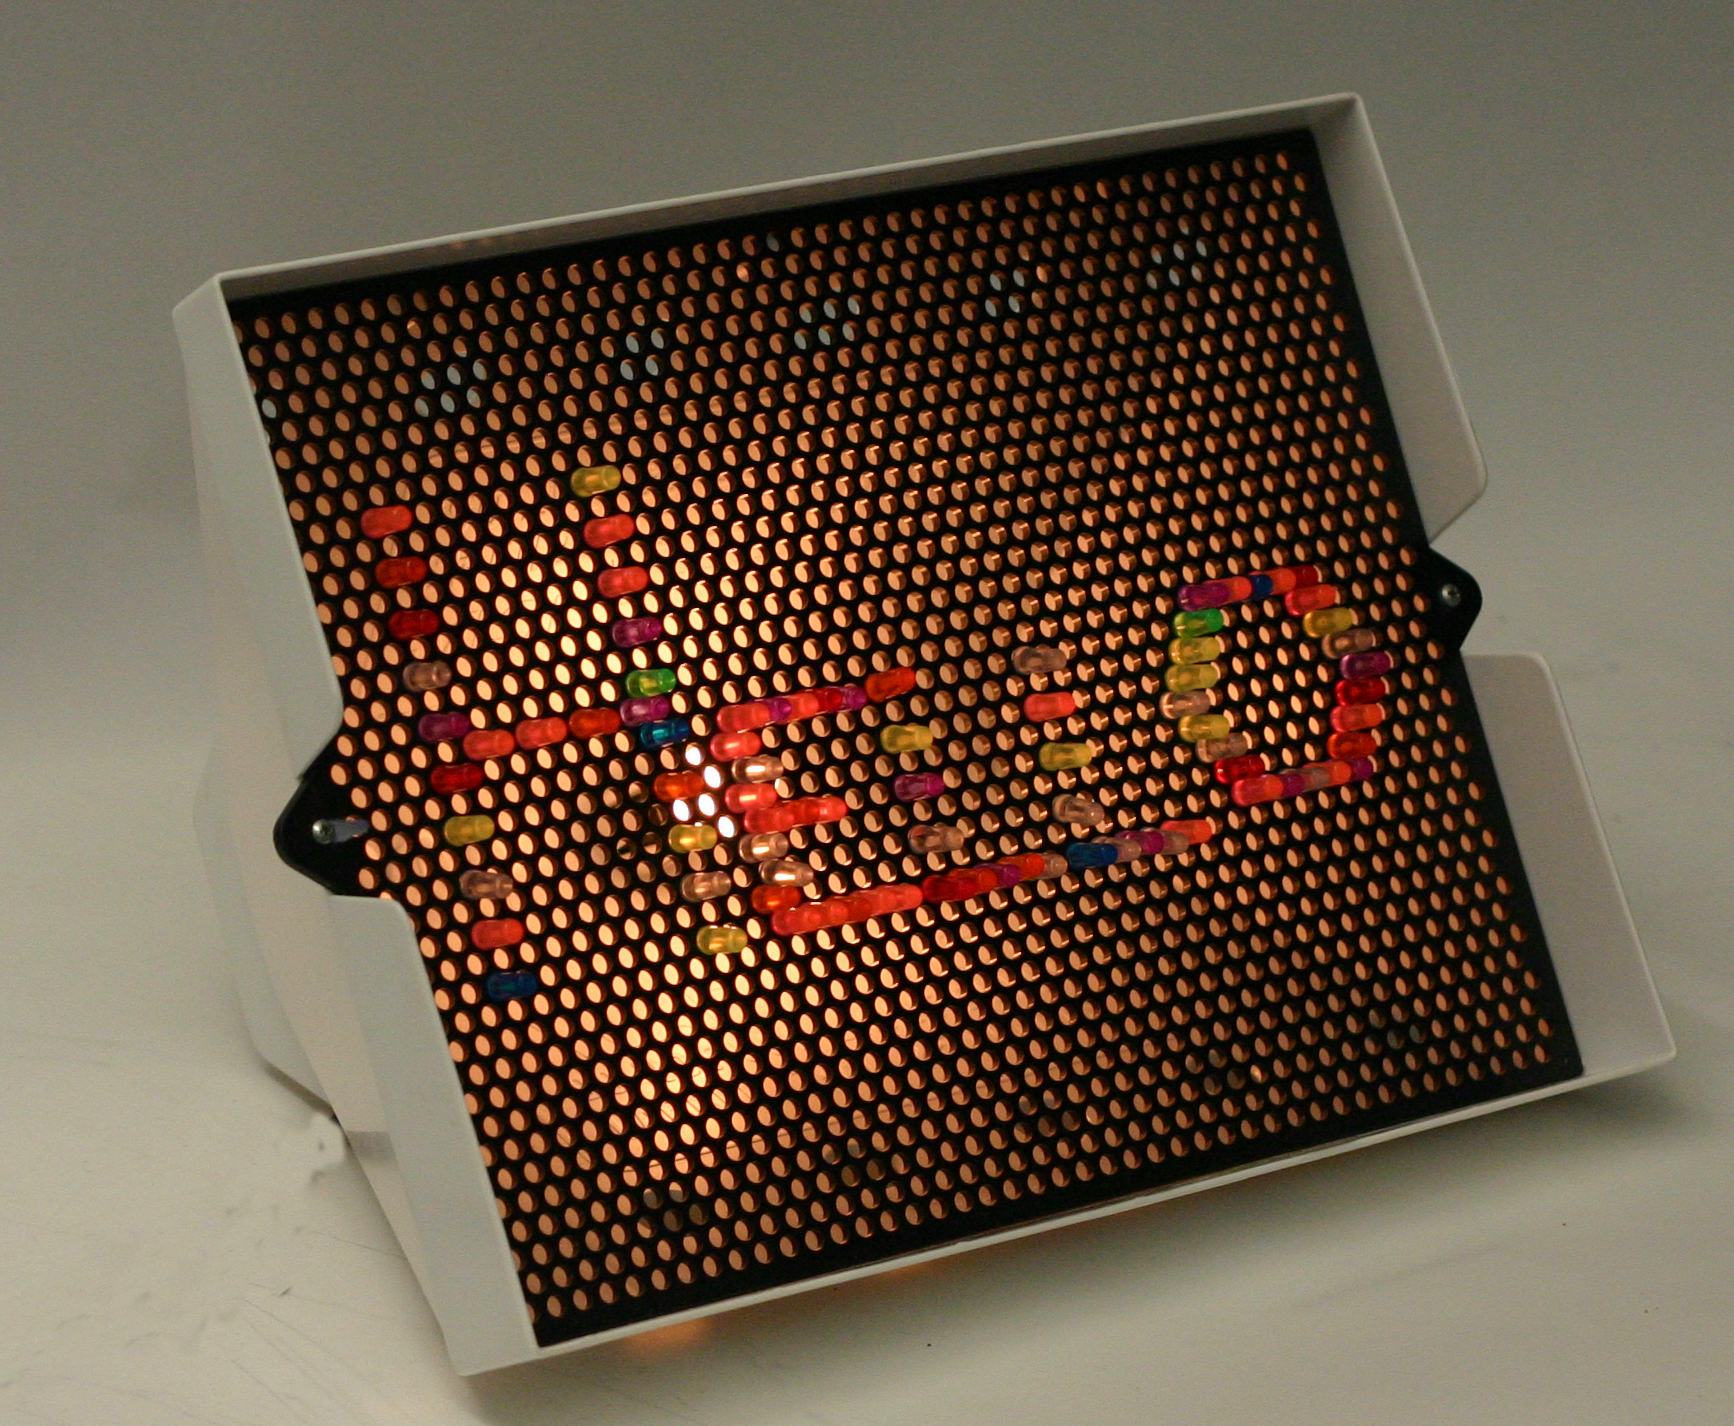 graphic about Printable Lite Brite Patterns identify Lite-Brite - Wikipedia